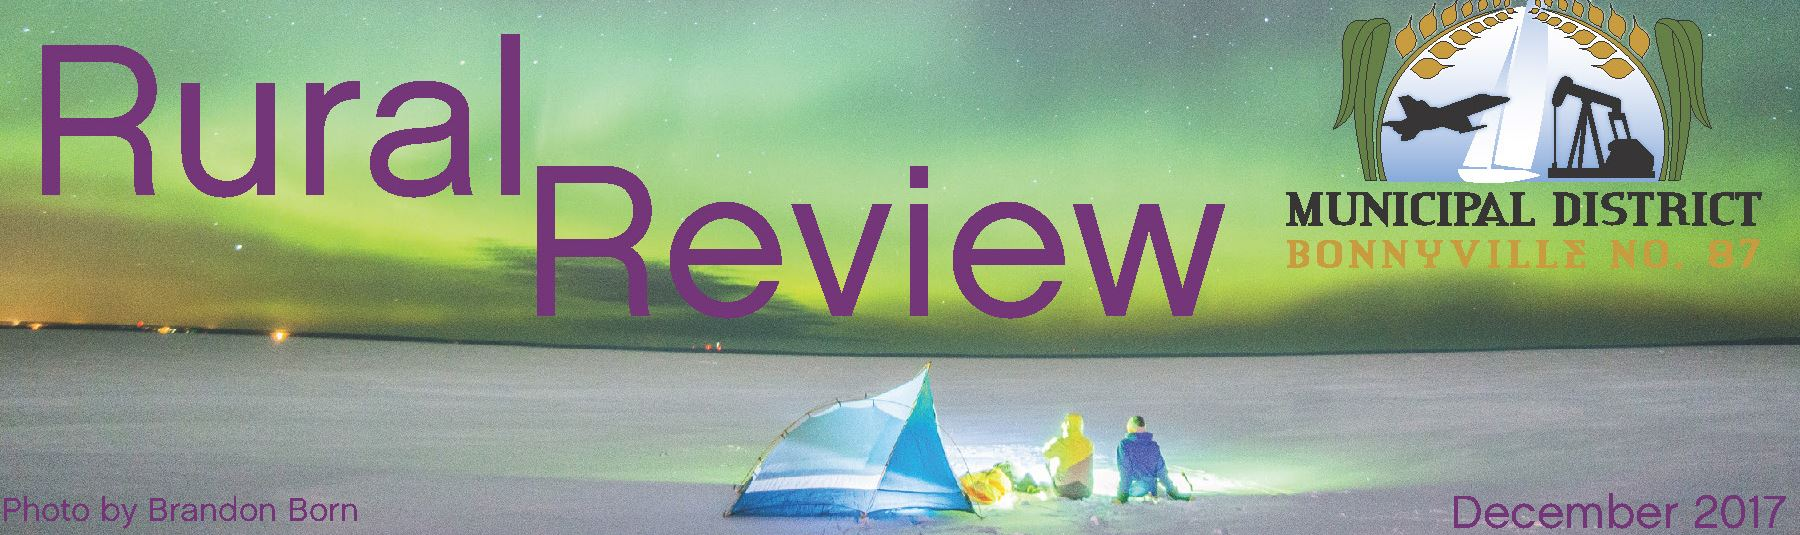 Rural Review Front